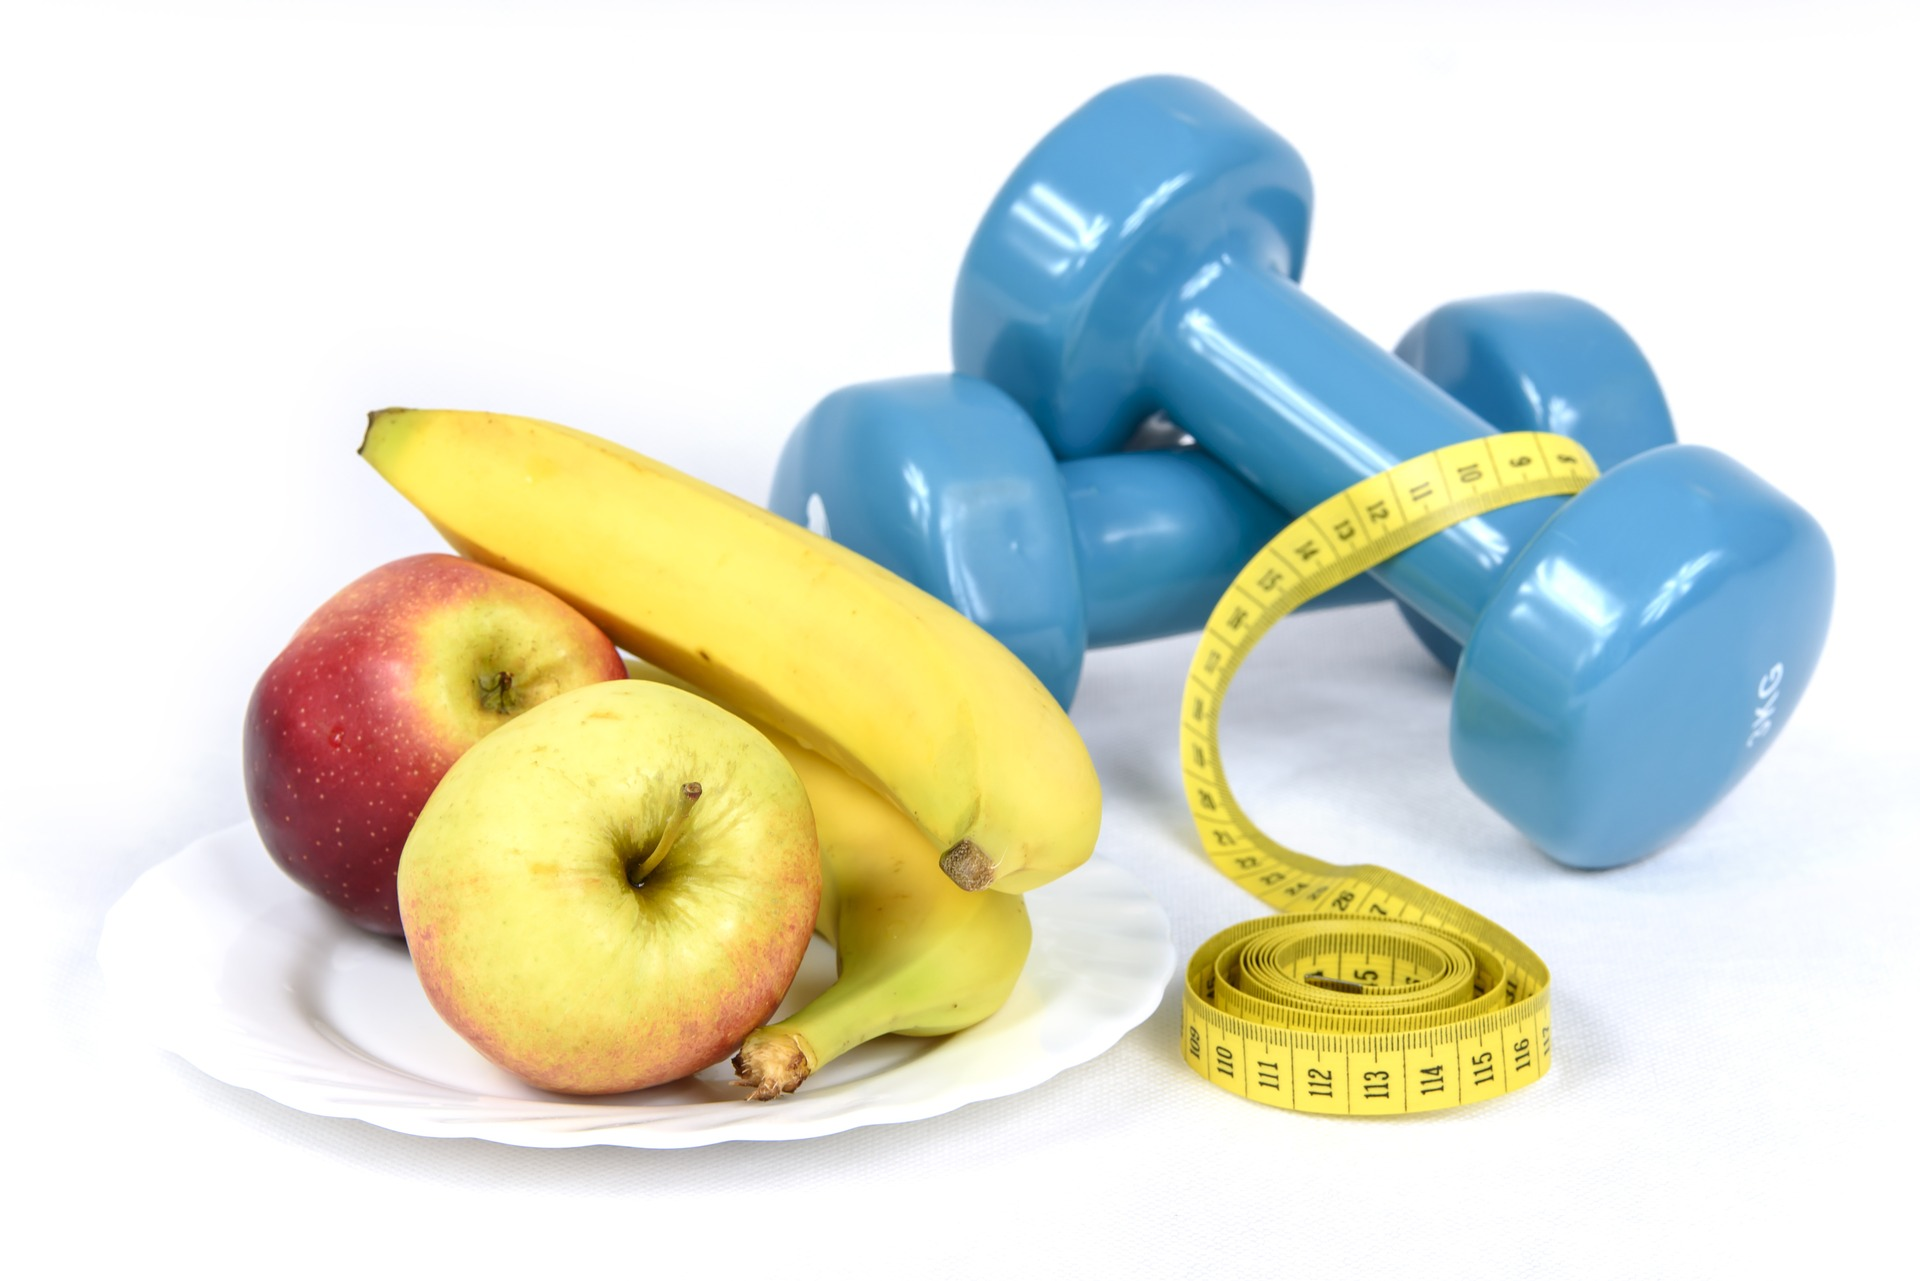 Don't give up on your health goals, alludes a new study. Your efforts will we well rewarded